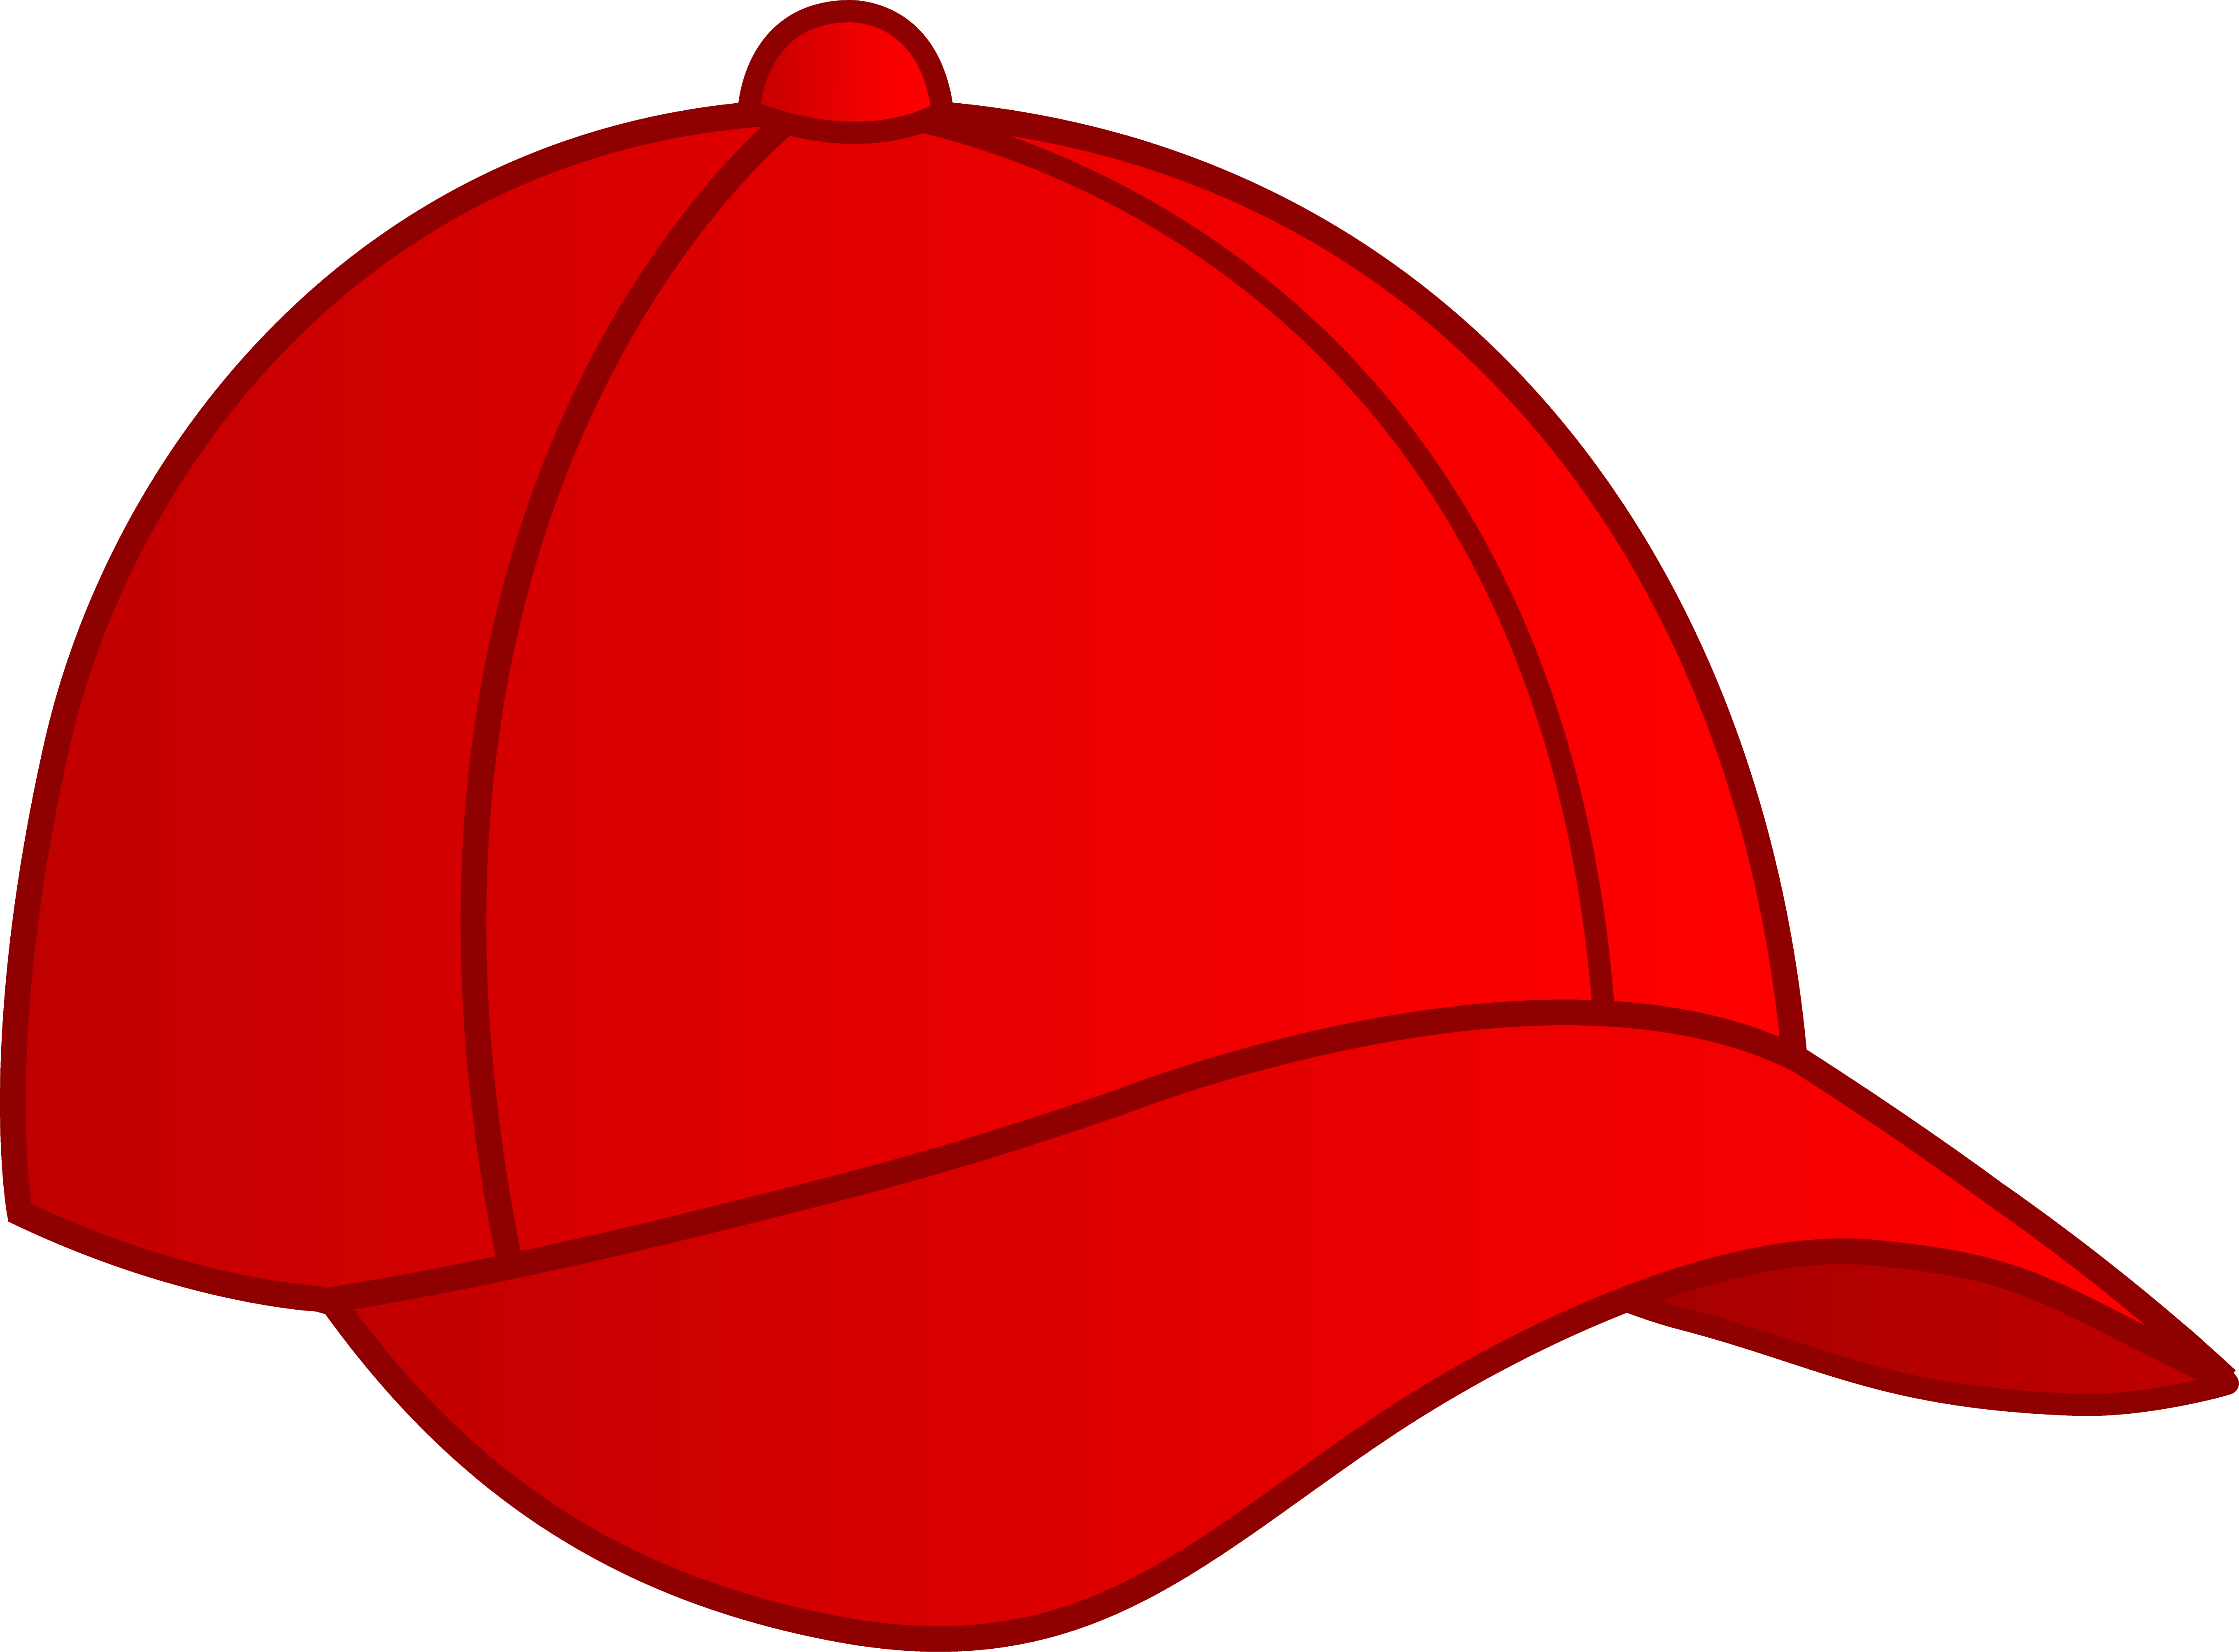 Baseball Hat Clipart | Clipart Panda - Free Clipart Images